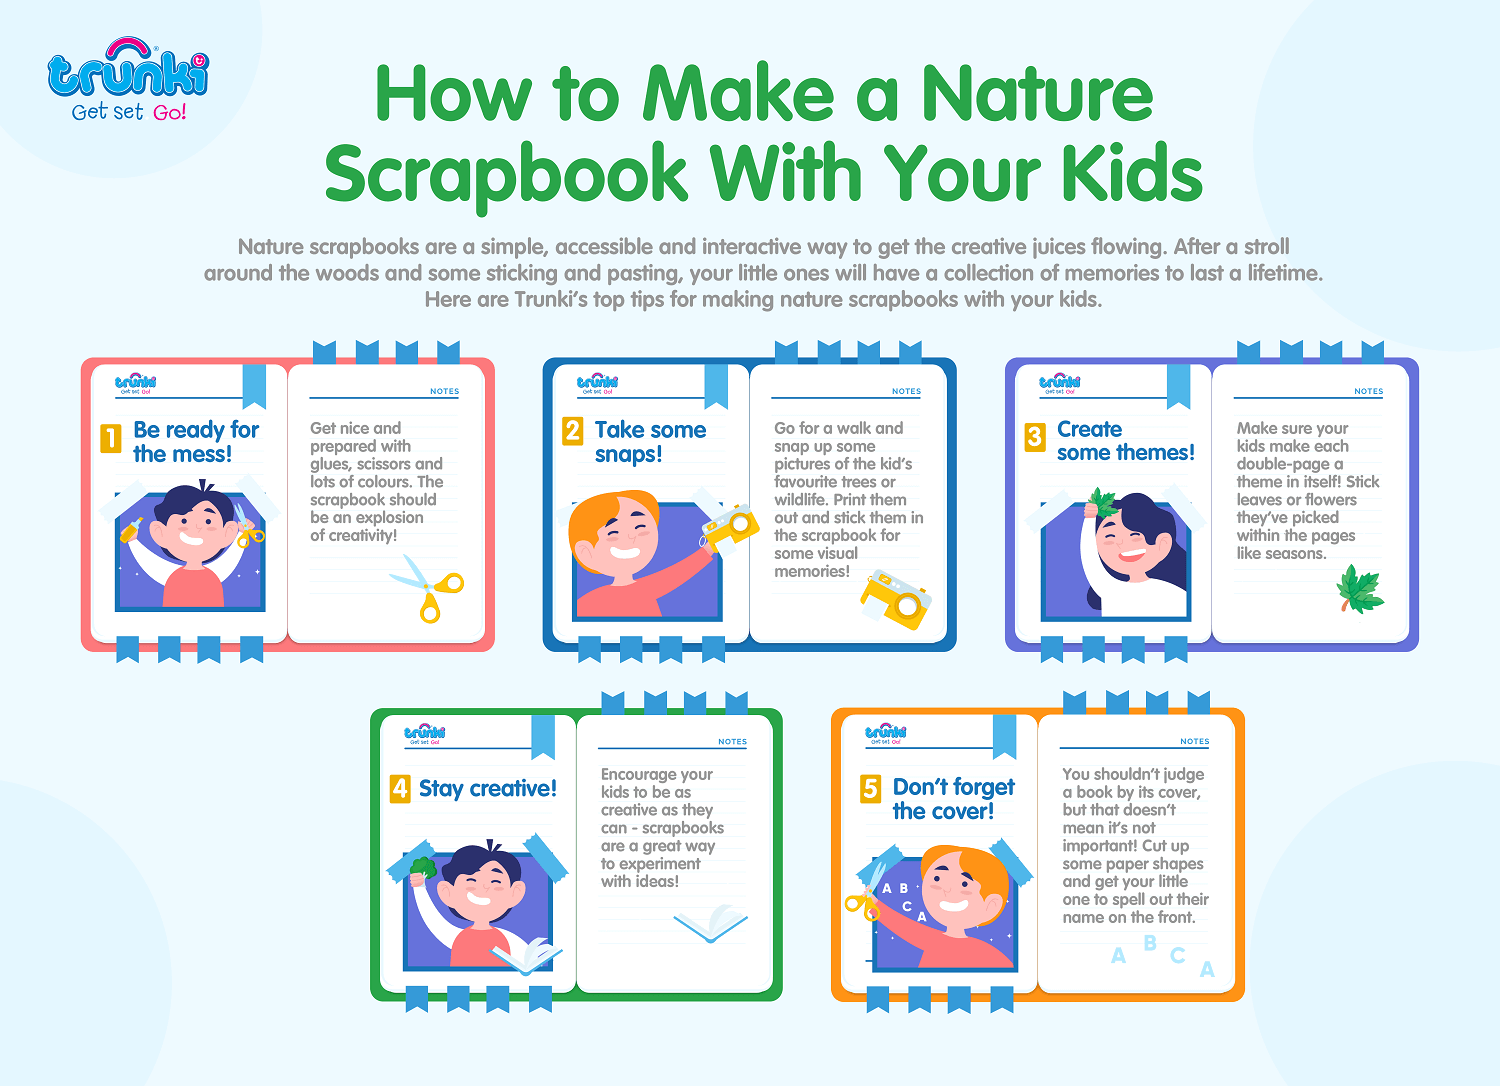 How to Make a Nature Scrapbook With Your Kids